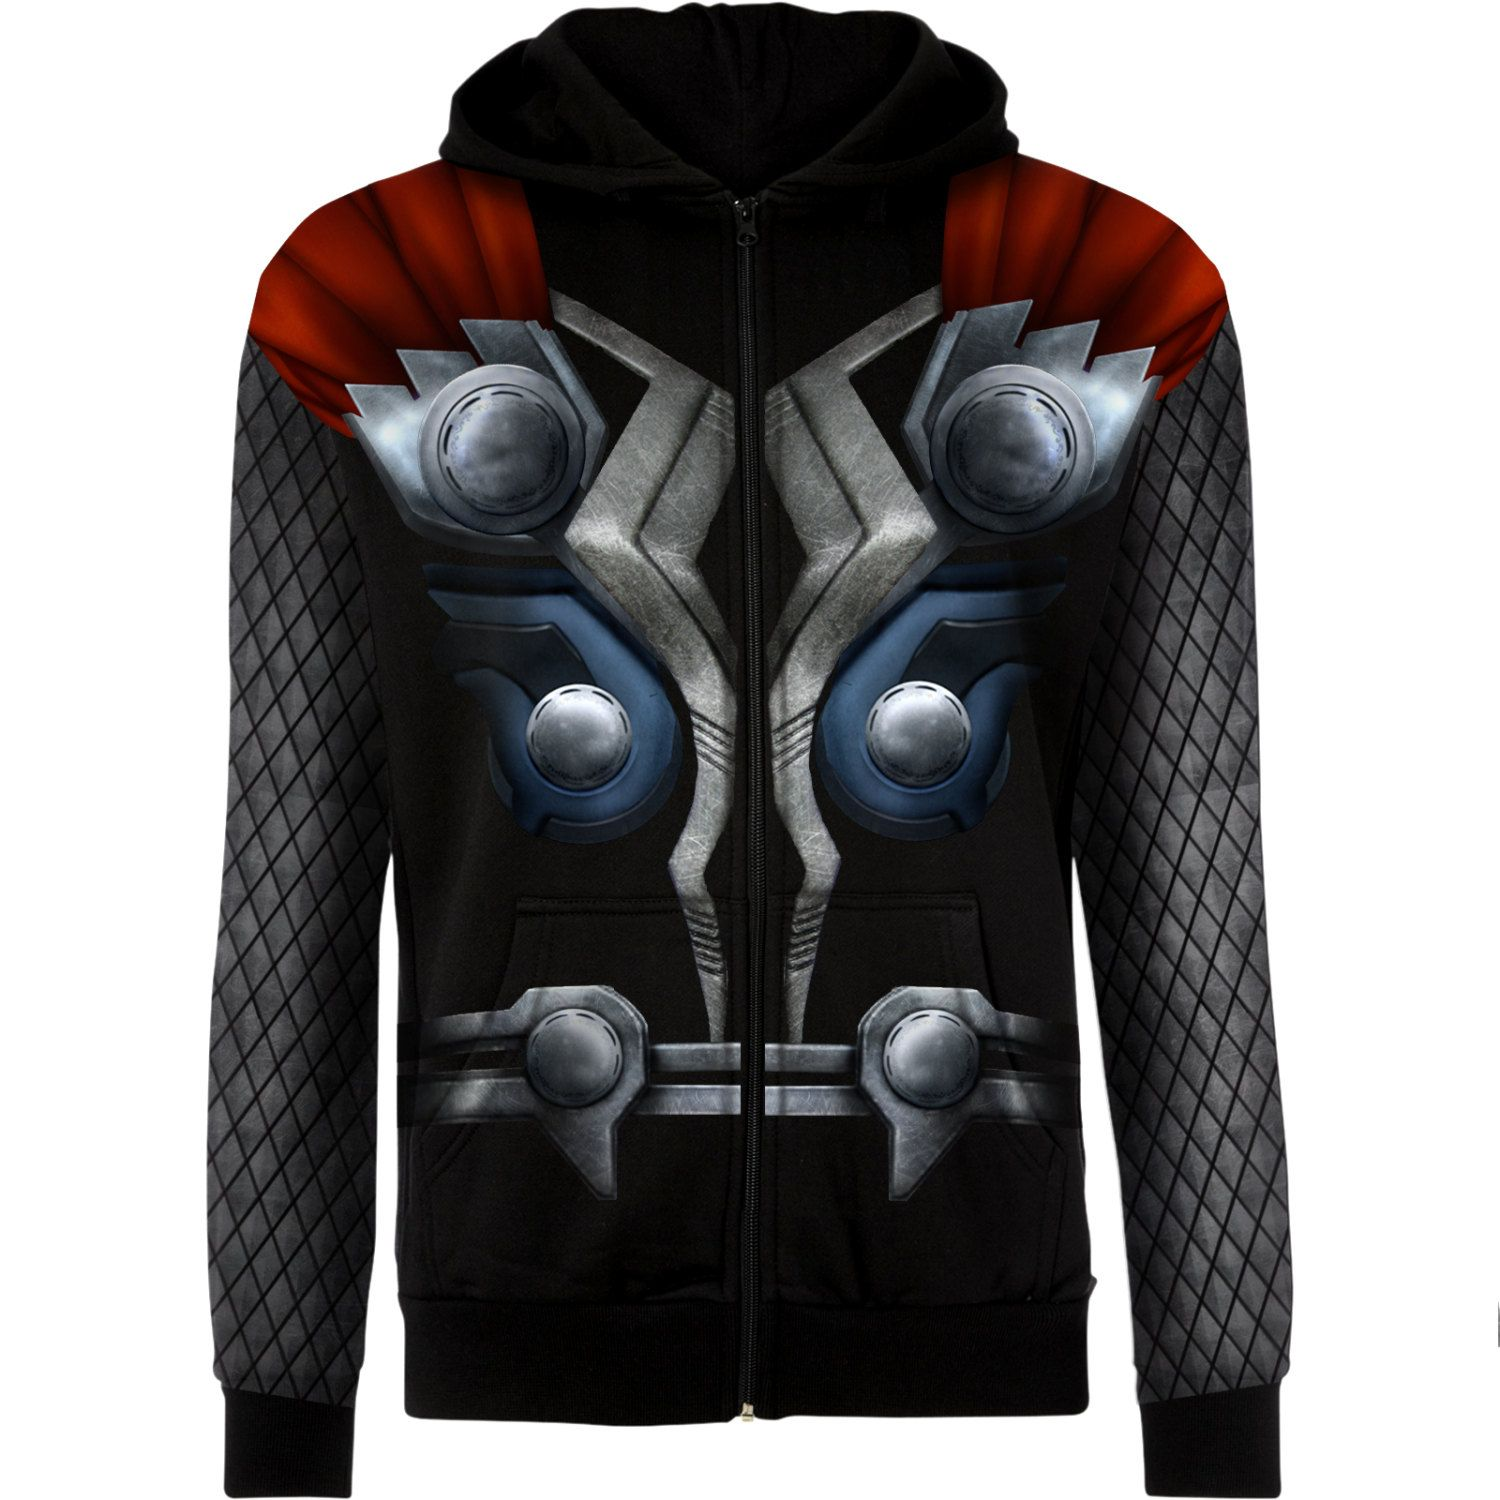 50% Off This Week Only Thor Hoodie or Shirt by CallMeCalliope